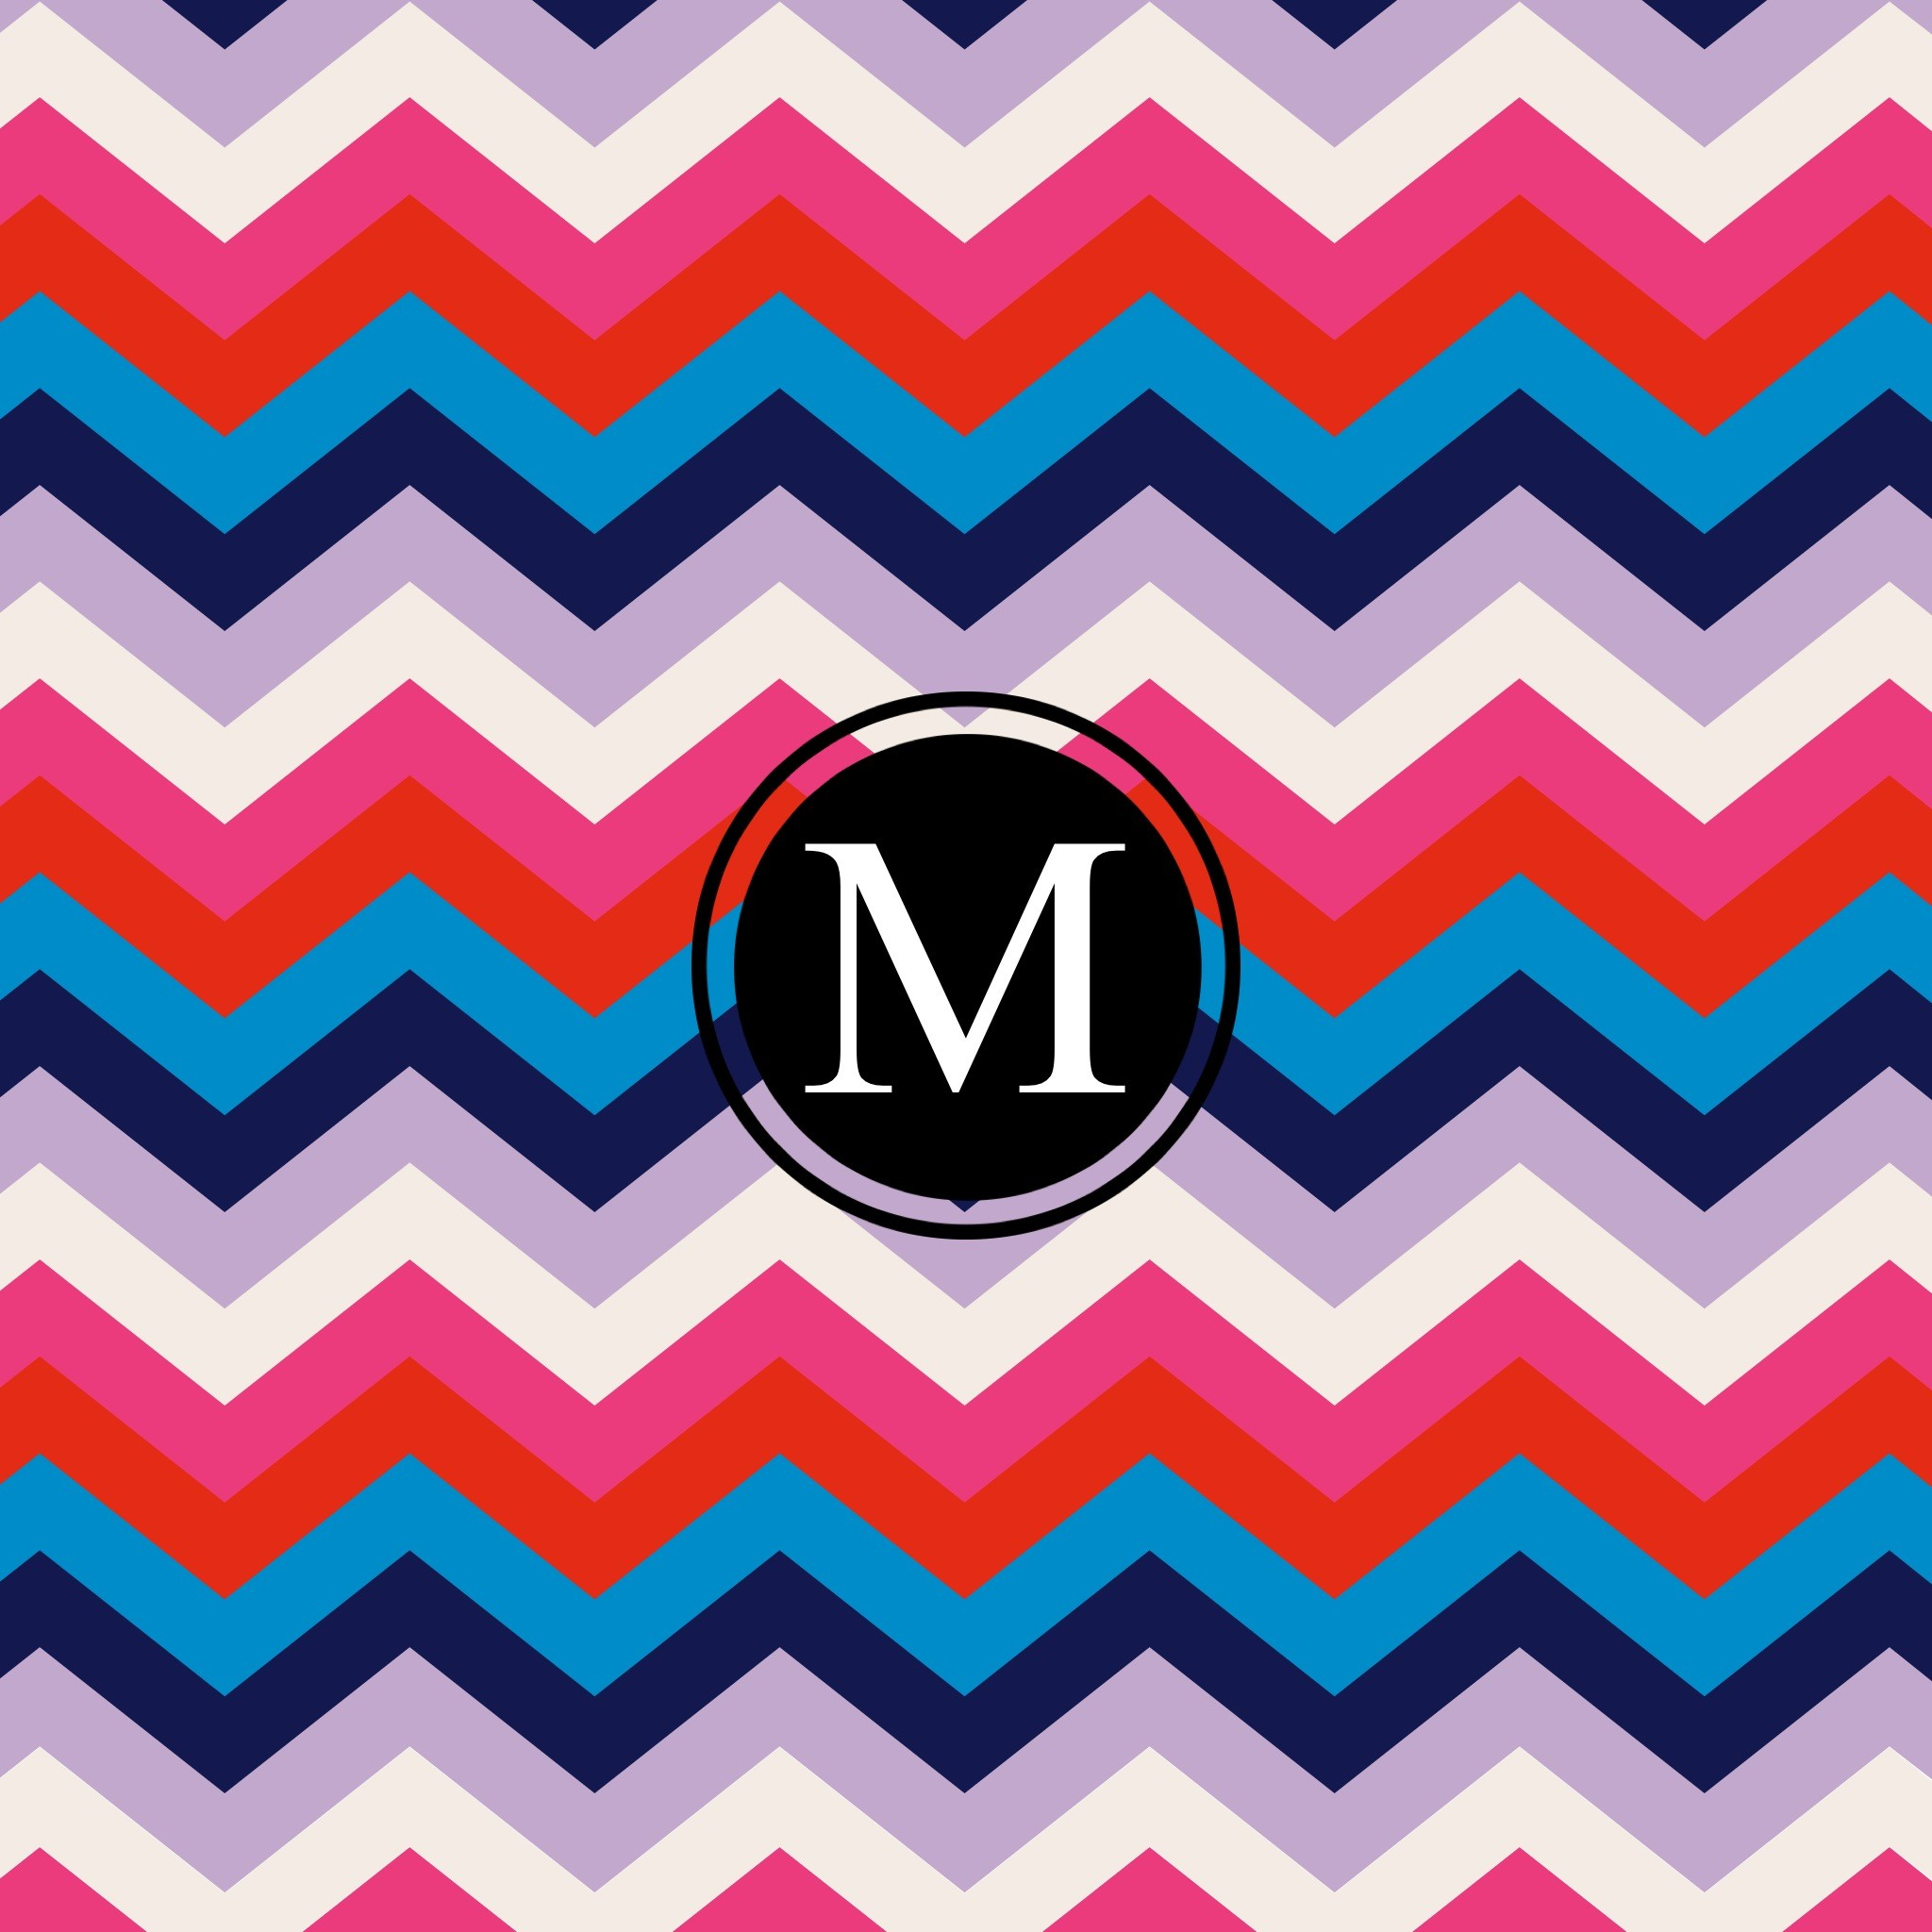 Make a Monogram Wallpaper (50+ images)